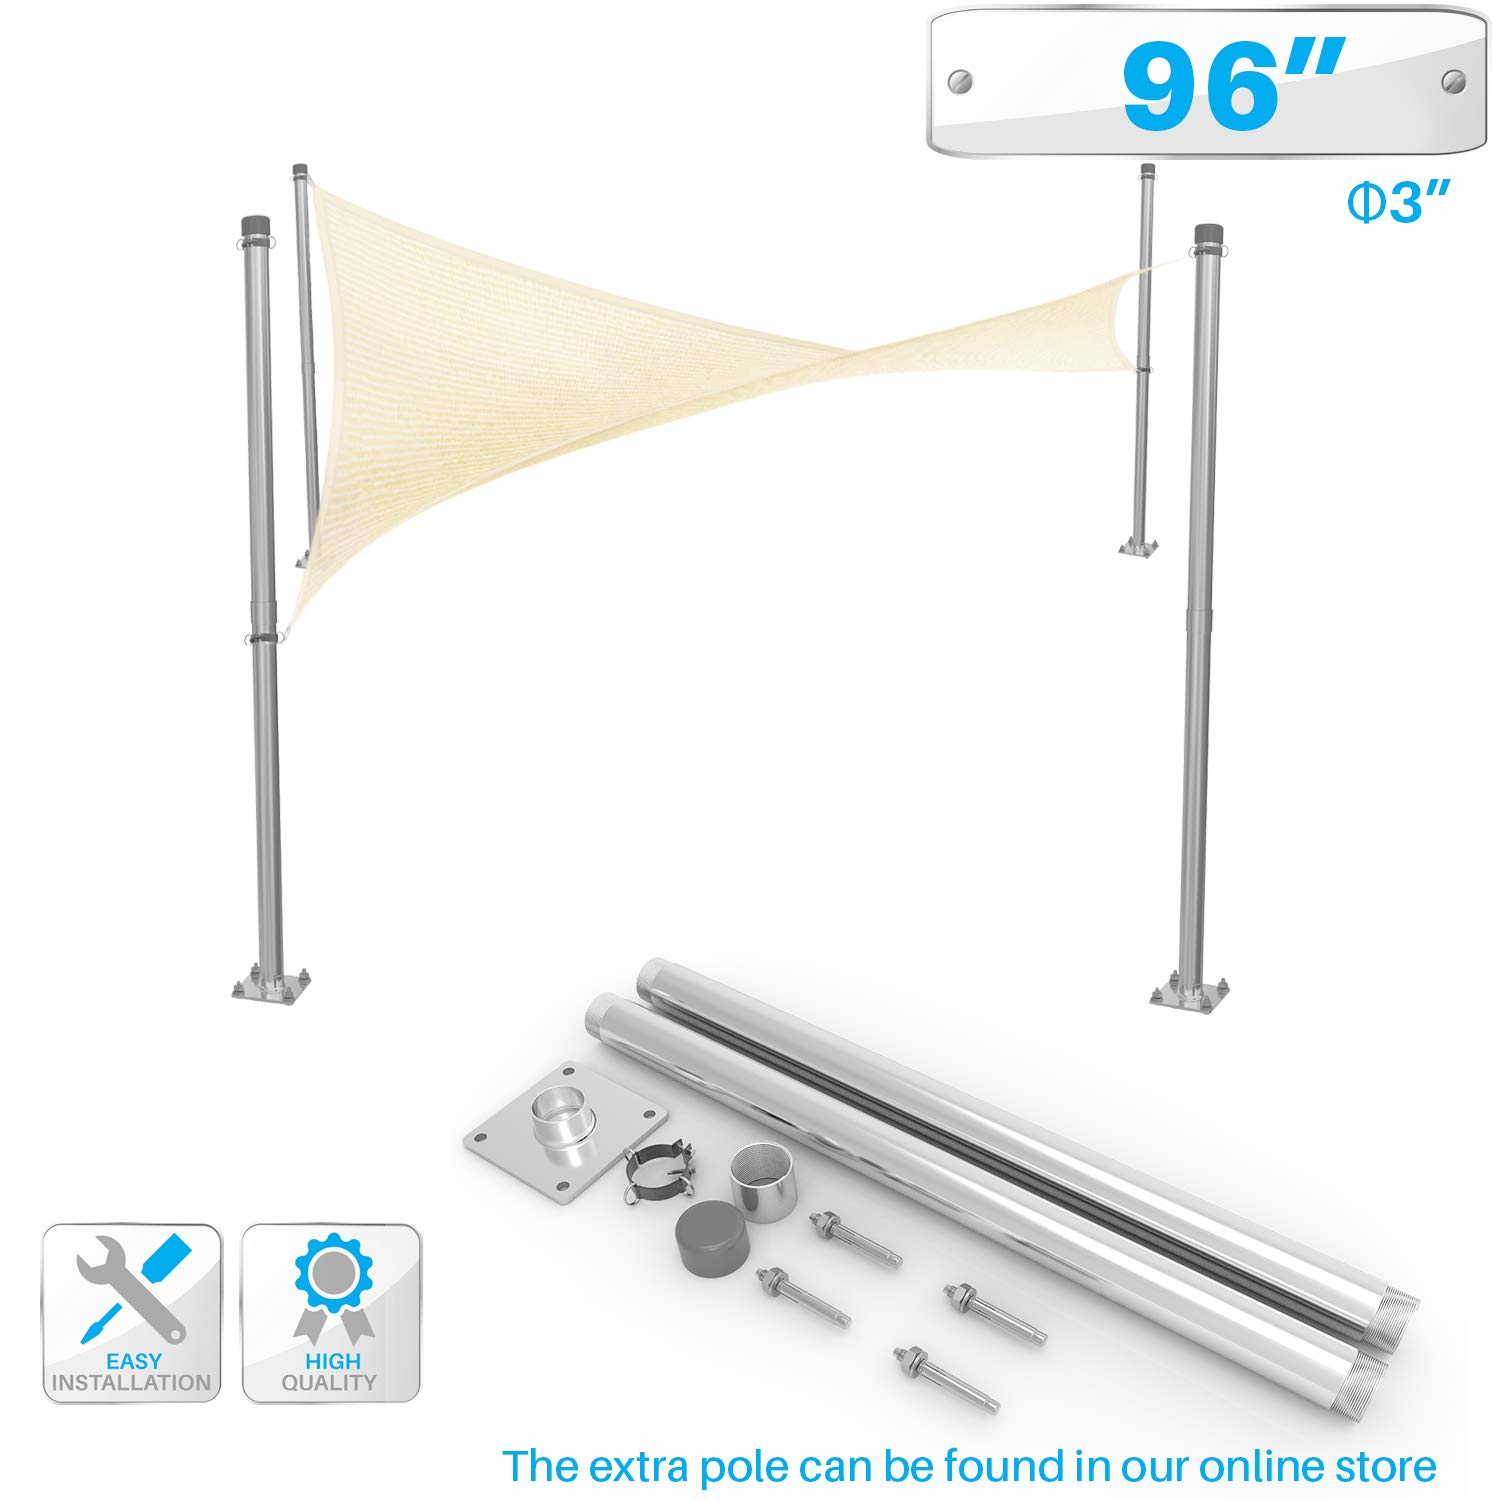 PATIO Sun Shade Sail Canopy Pole Post Kit 8' Feet Tall (96'') Stand Post Heavy Duty Metal Shade Posts Canopy Awning Canvas Tarp Support Poles Deck Galvanized Steel Silver by PATIO